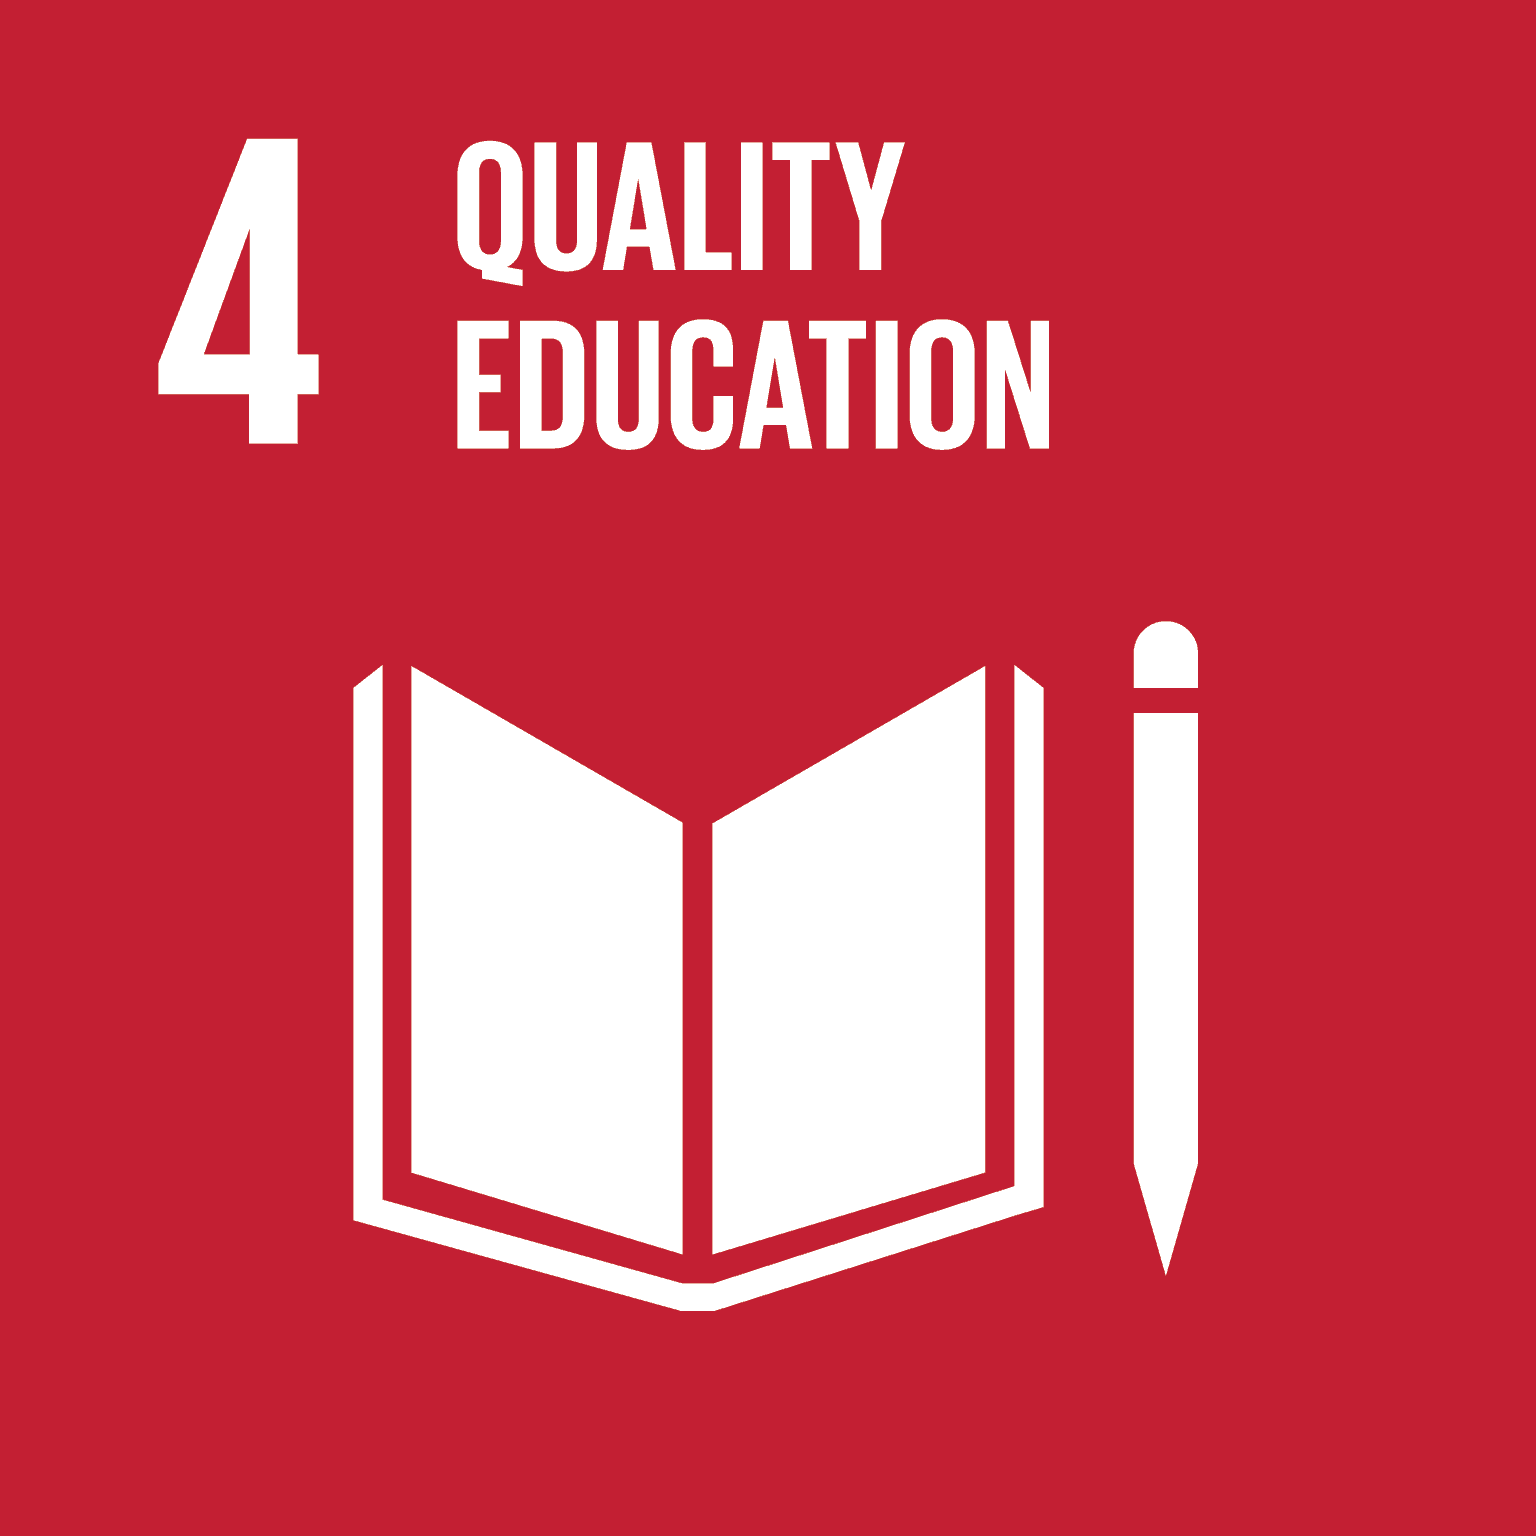 SDG 4 Posters